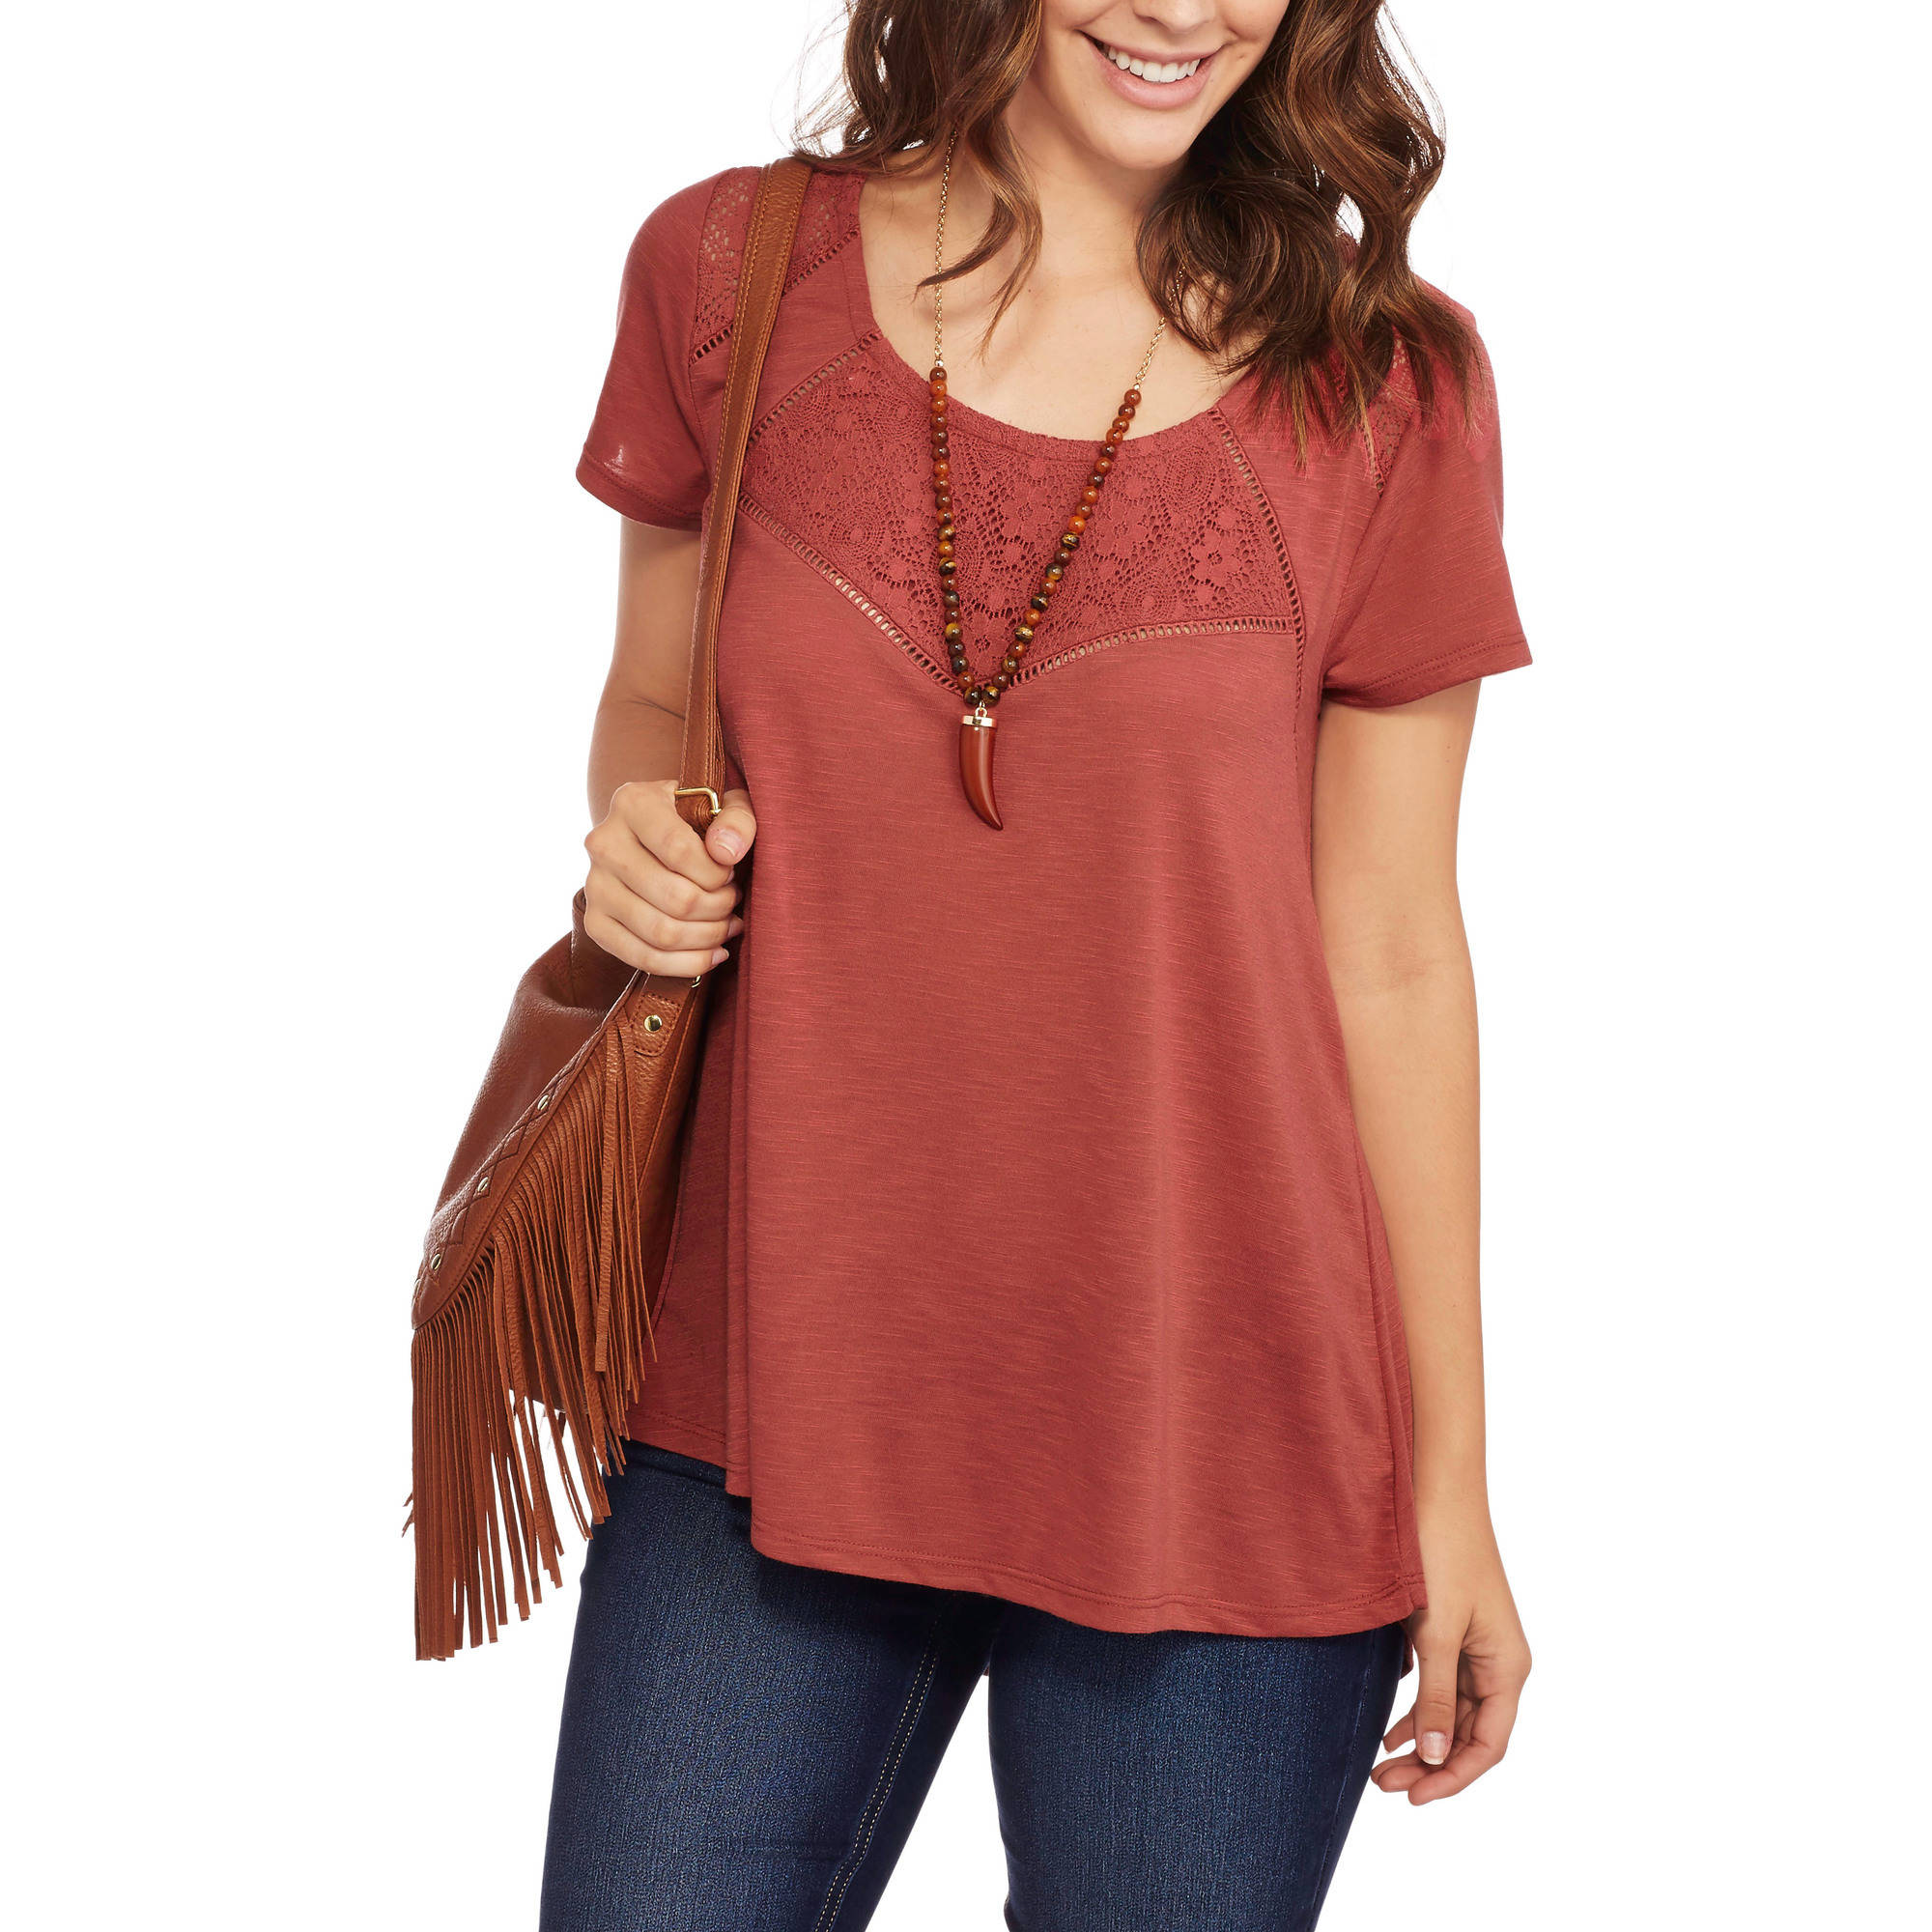 Absolutely Famous Women's Feminine Swing Top with Lace Insets